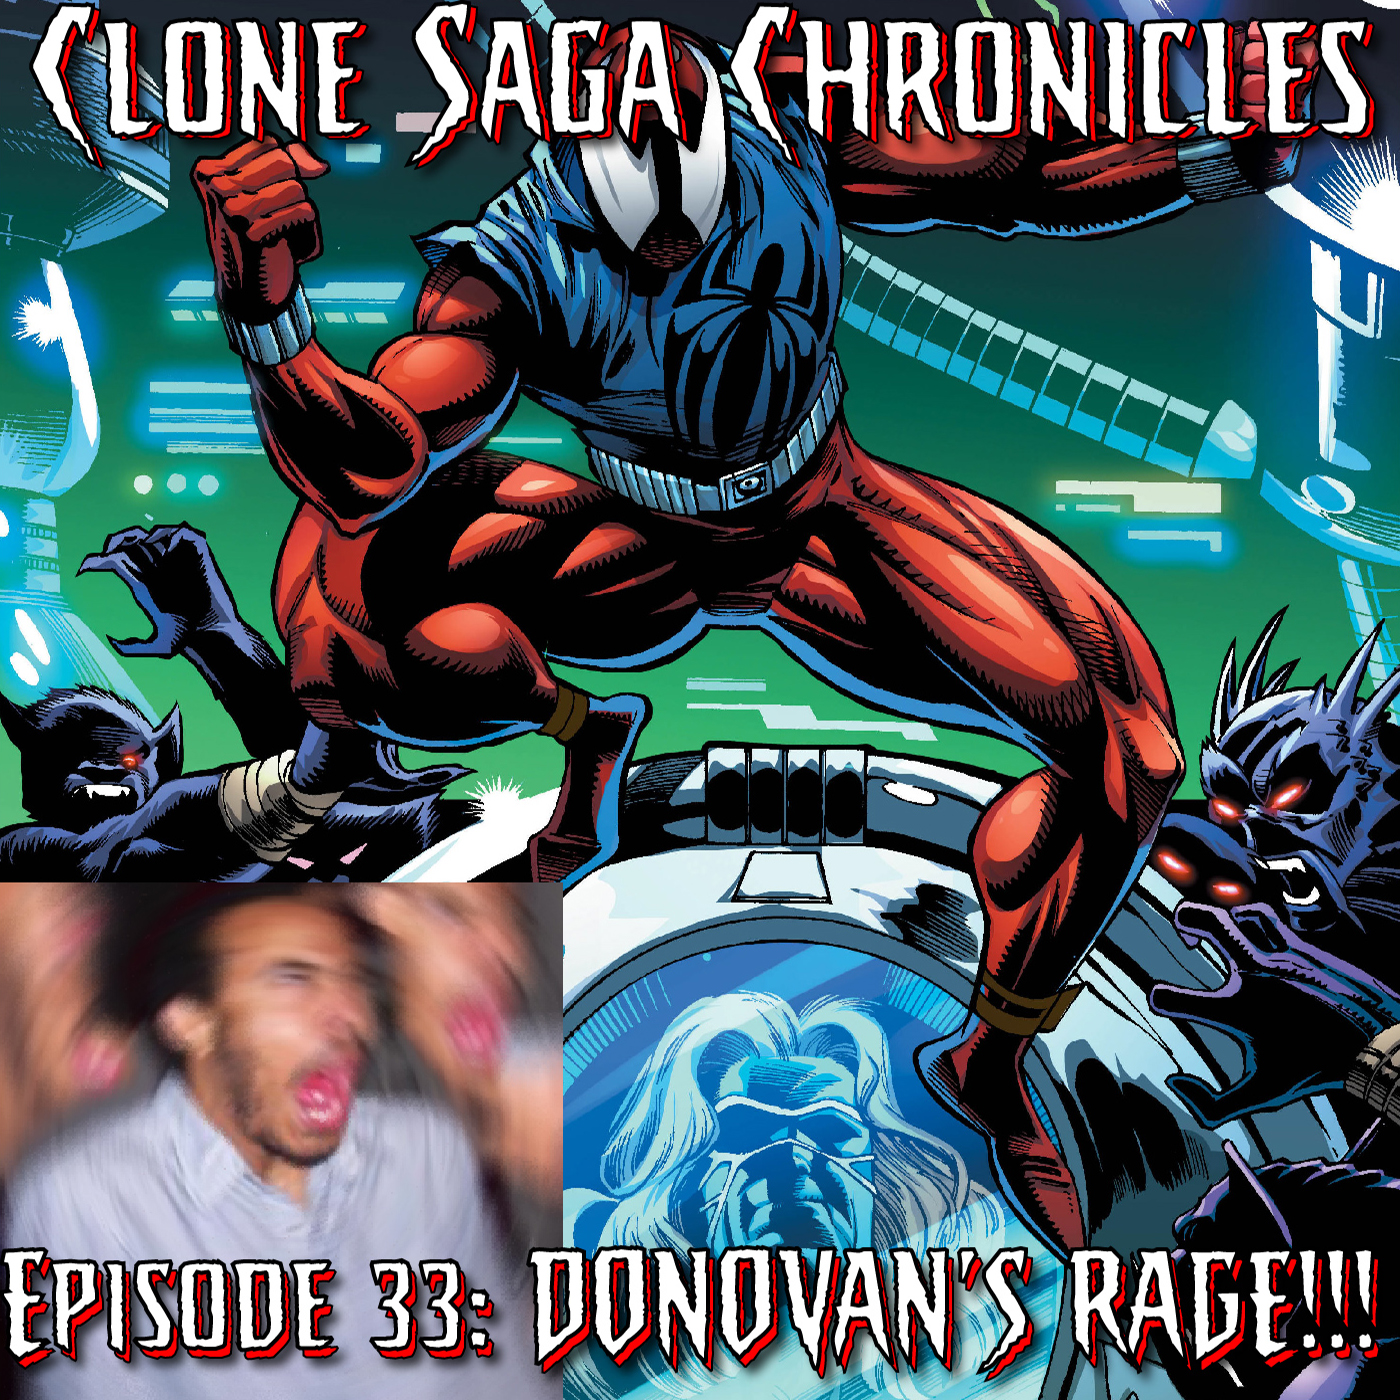 CSC Episode 33: Donovan's RAGE! (Scarlet Spider Unlimited 1, Cover date November 1995)